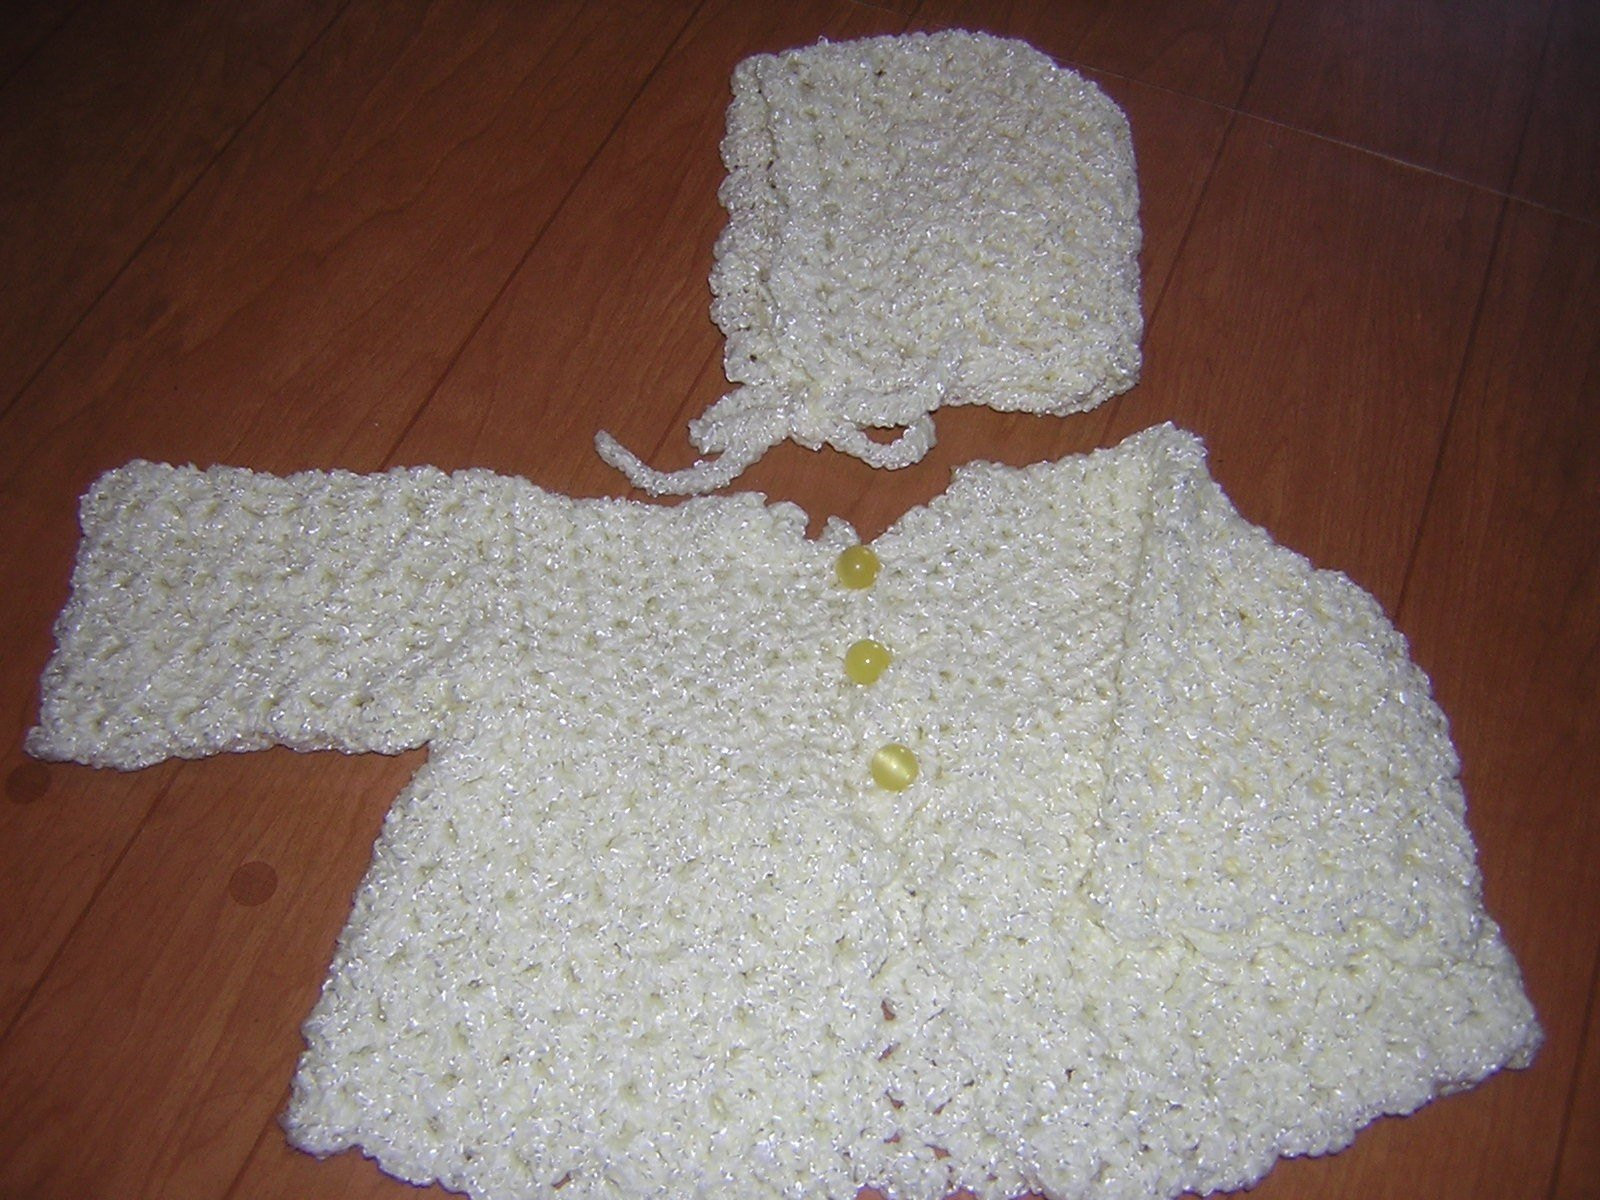 Crochet Baby Sweater New Baby Crochet Easy Pattern Sweater – Crochet Patterns Of Charming 44 Images Crochet Baby Sweater